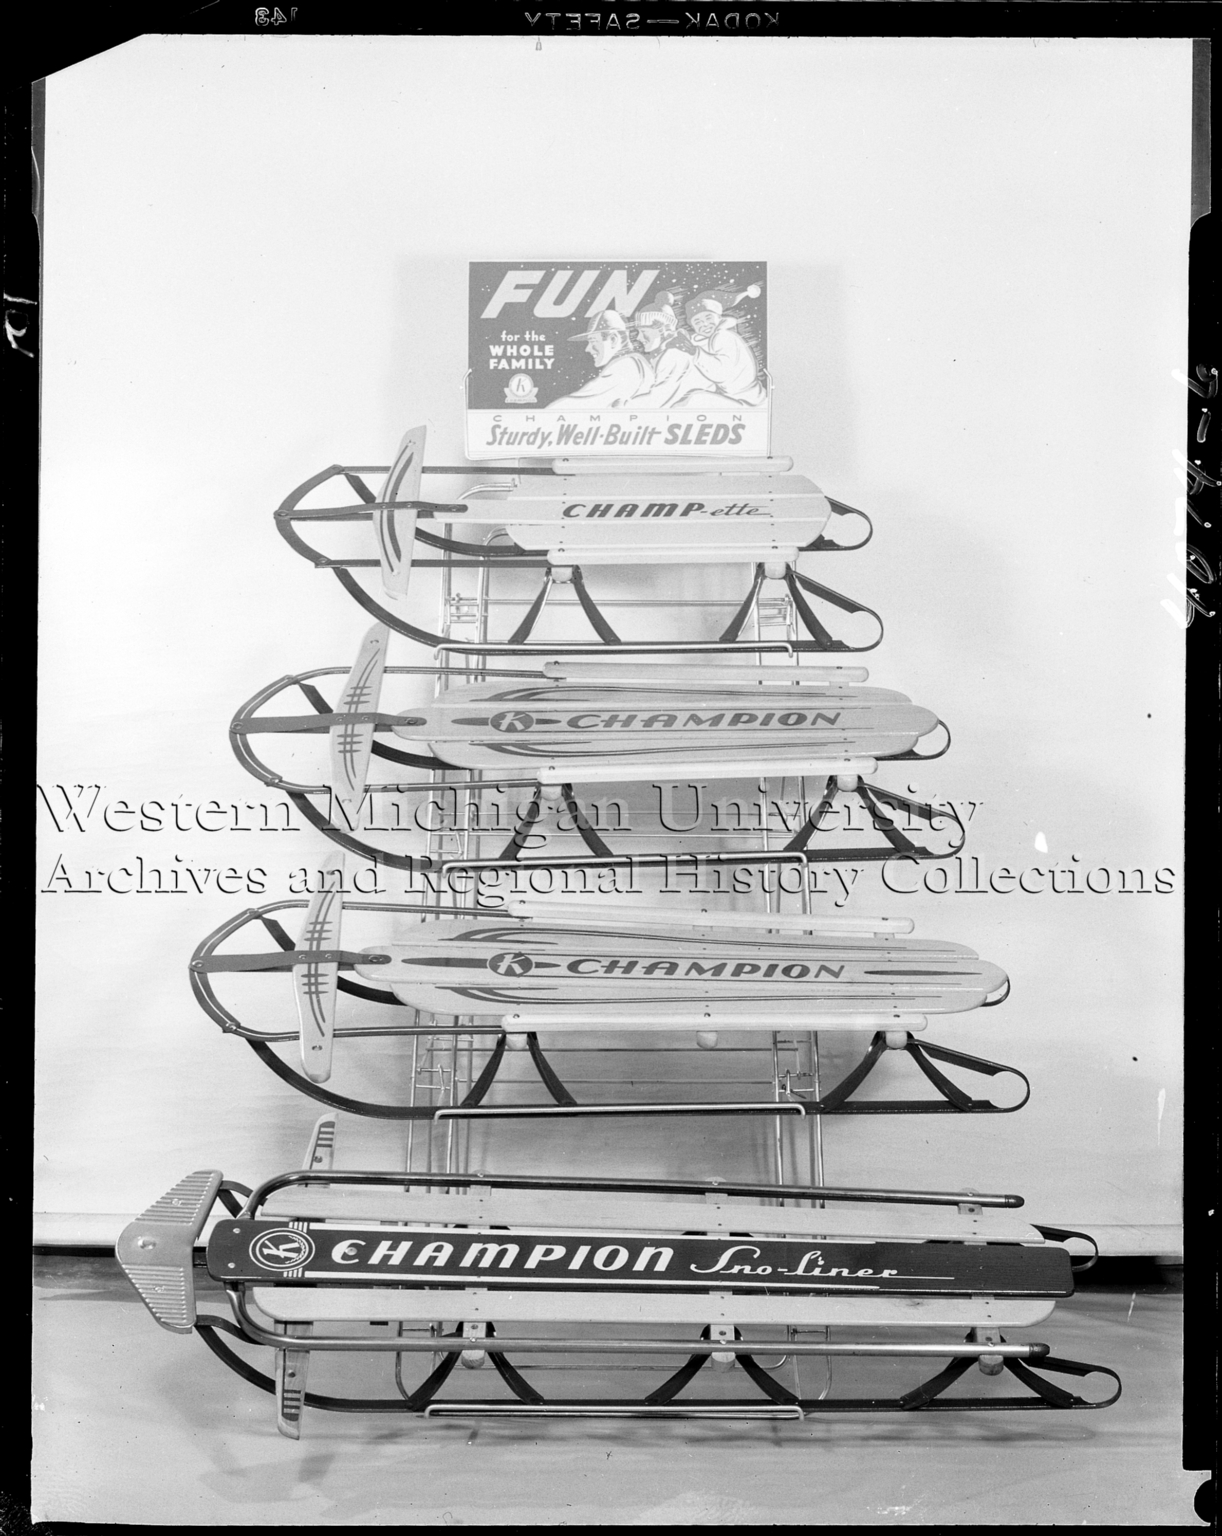 Kalamazoo Sled Company, display of Champion sleds